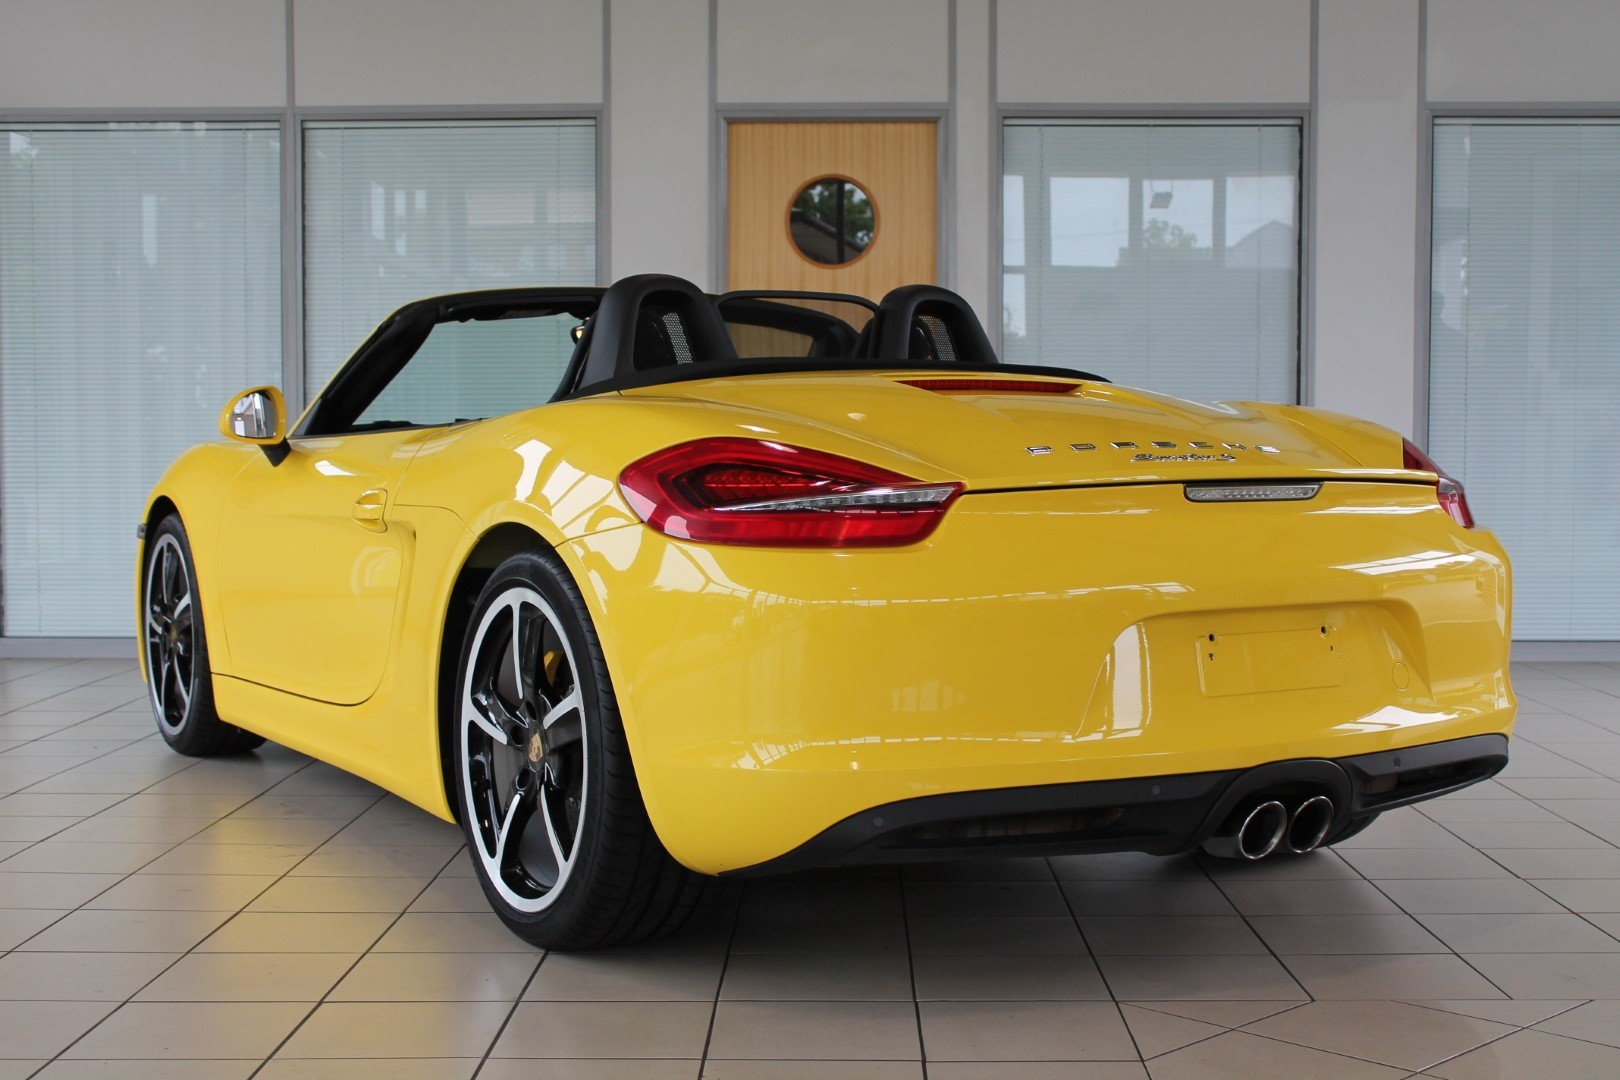 2015 Boxster (981) 3.4 'S' Manual For Sale (picture 3 of 6)